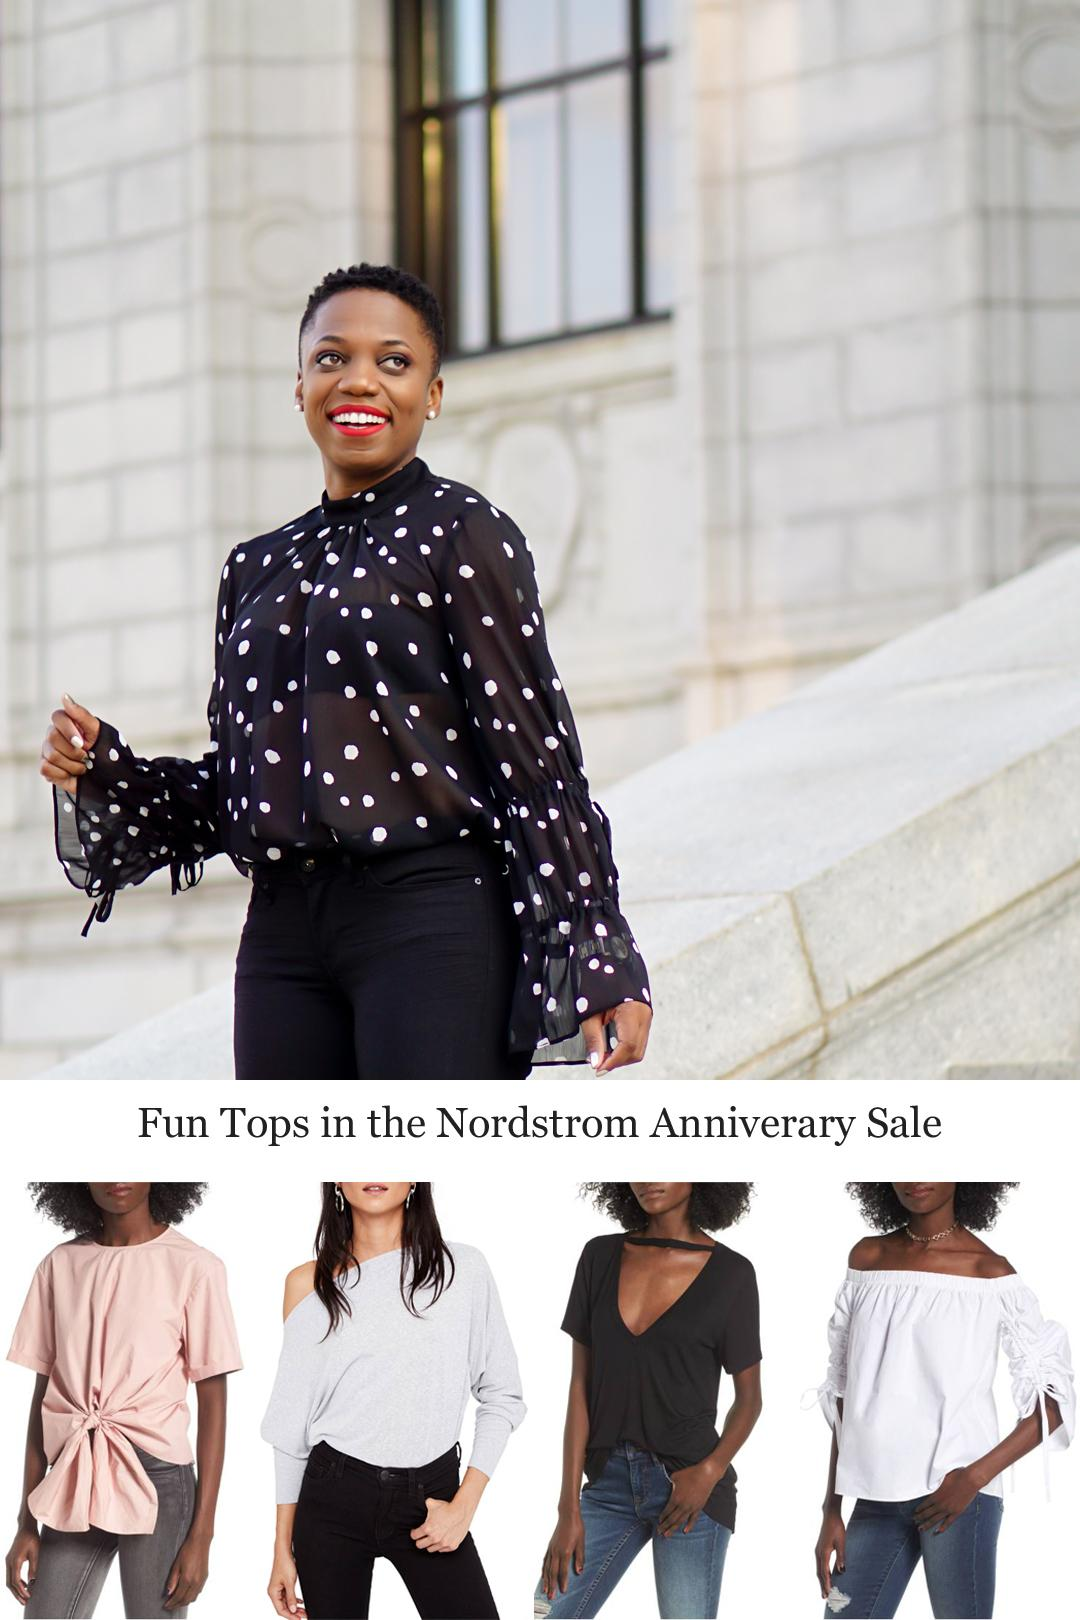 Fun Tops Nordstrom Anniversary Sale